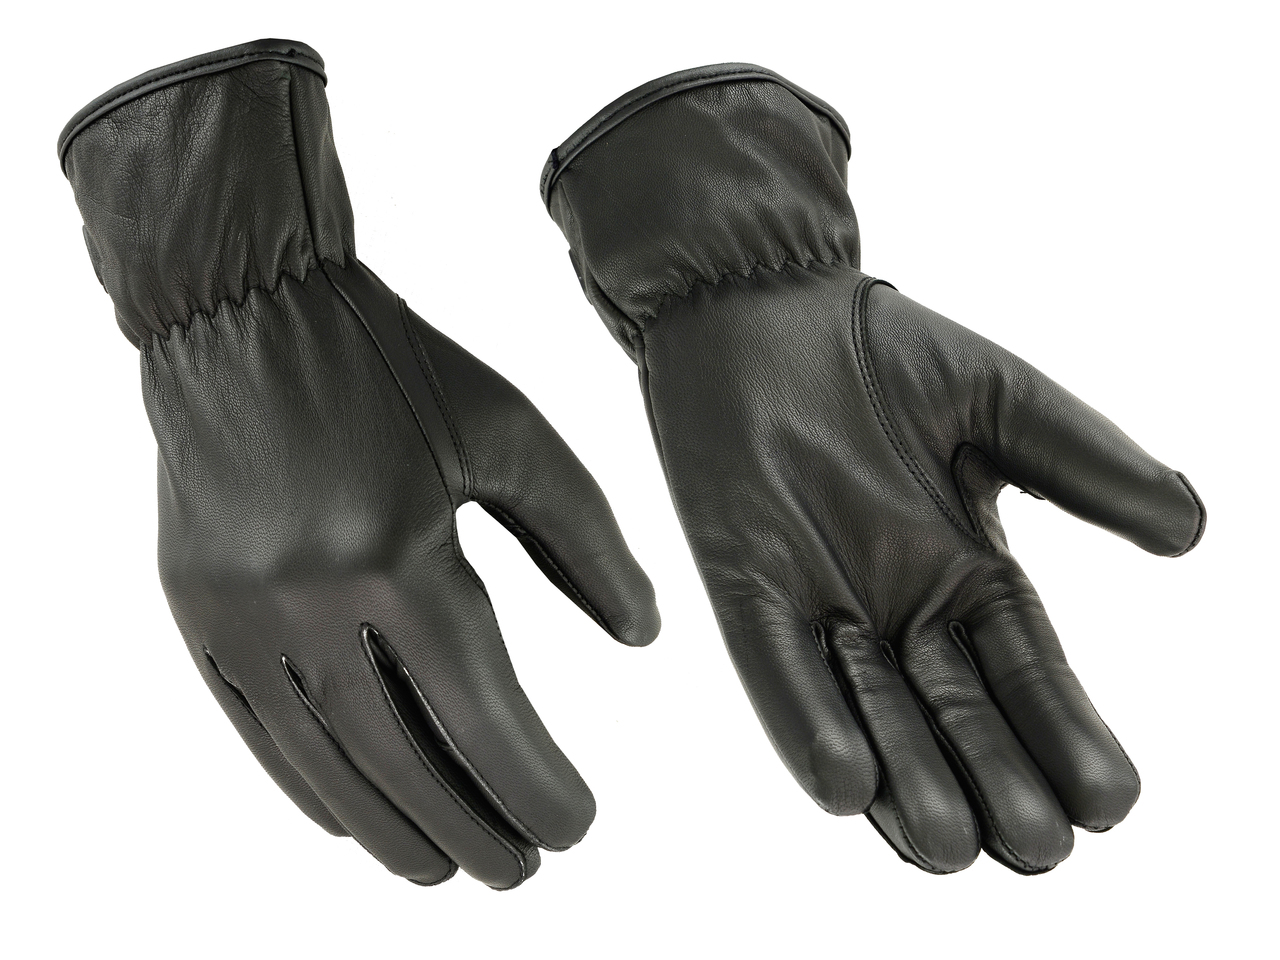 Men's Unlined Technaline Leather, Basic Seamless Riding Gloves, Water Resistant (M.BSRG)